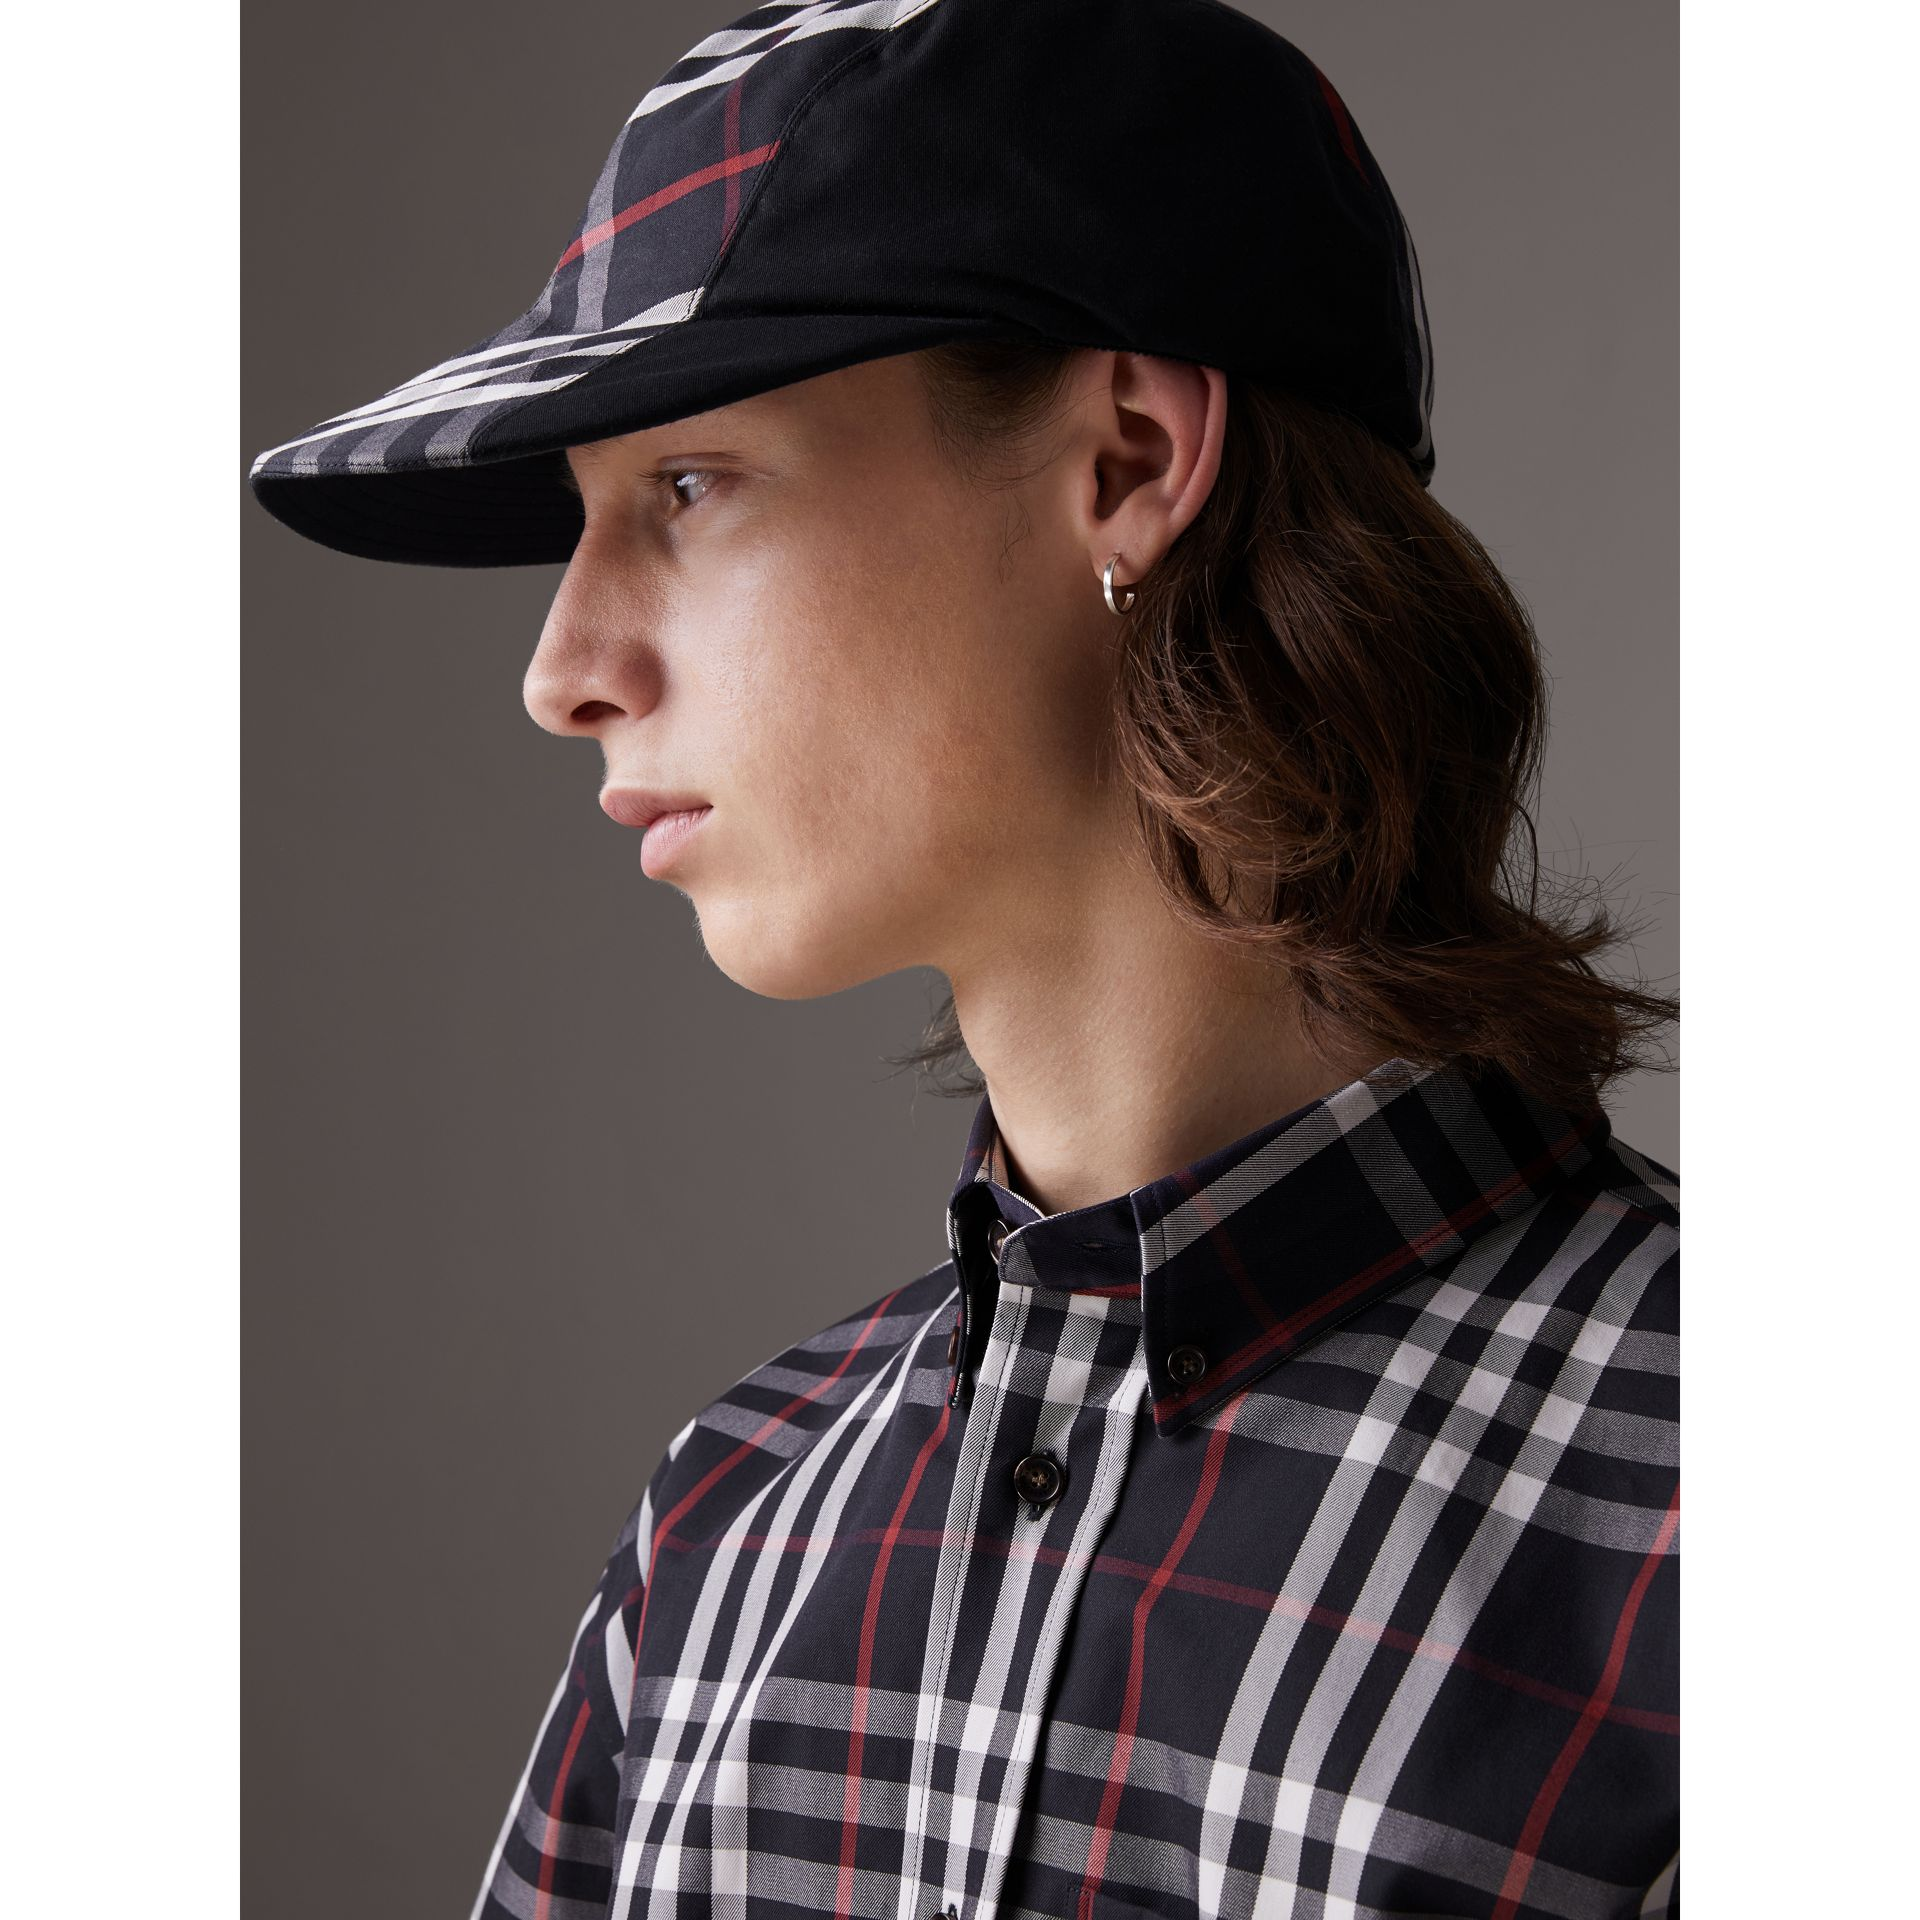 d94cceb765f Gosha x Burberry Duckbill Cap by Burberry — Thread